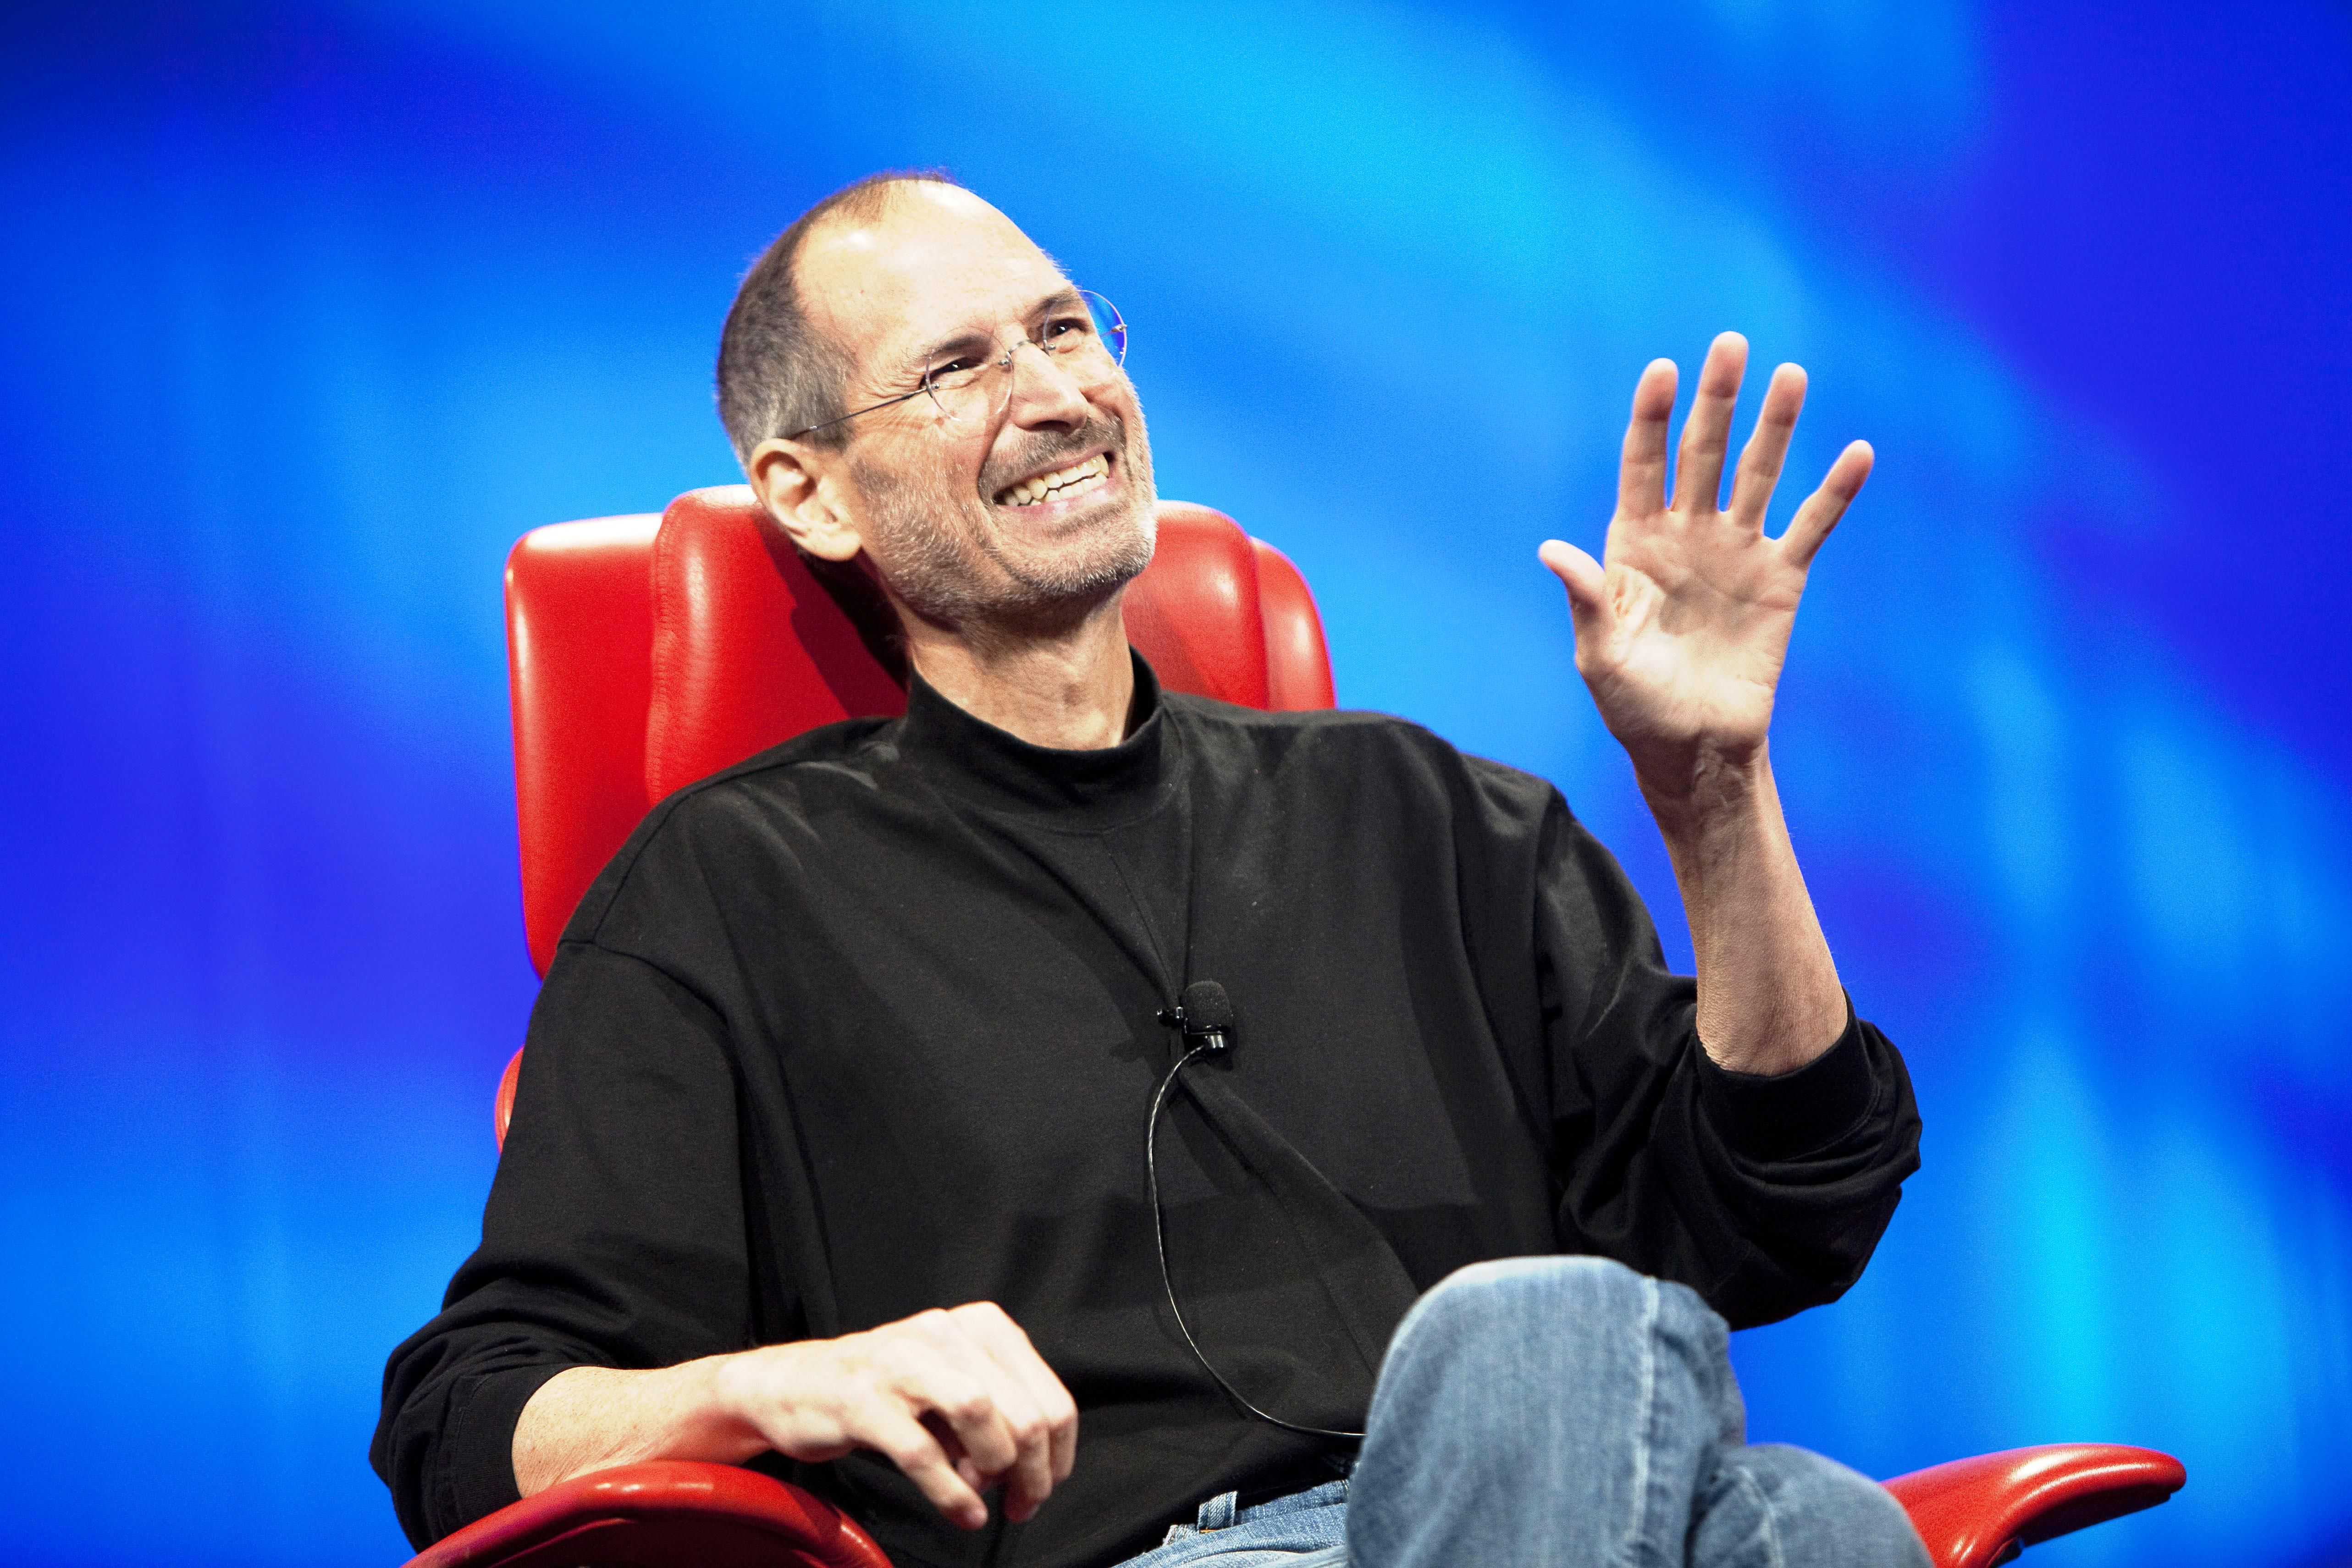 Steve Jobs smiling and talking in a red chair